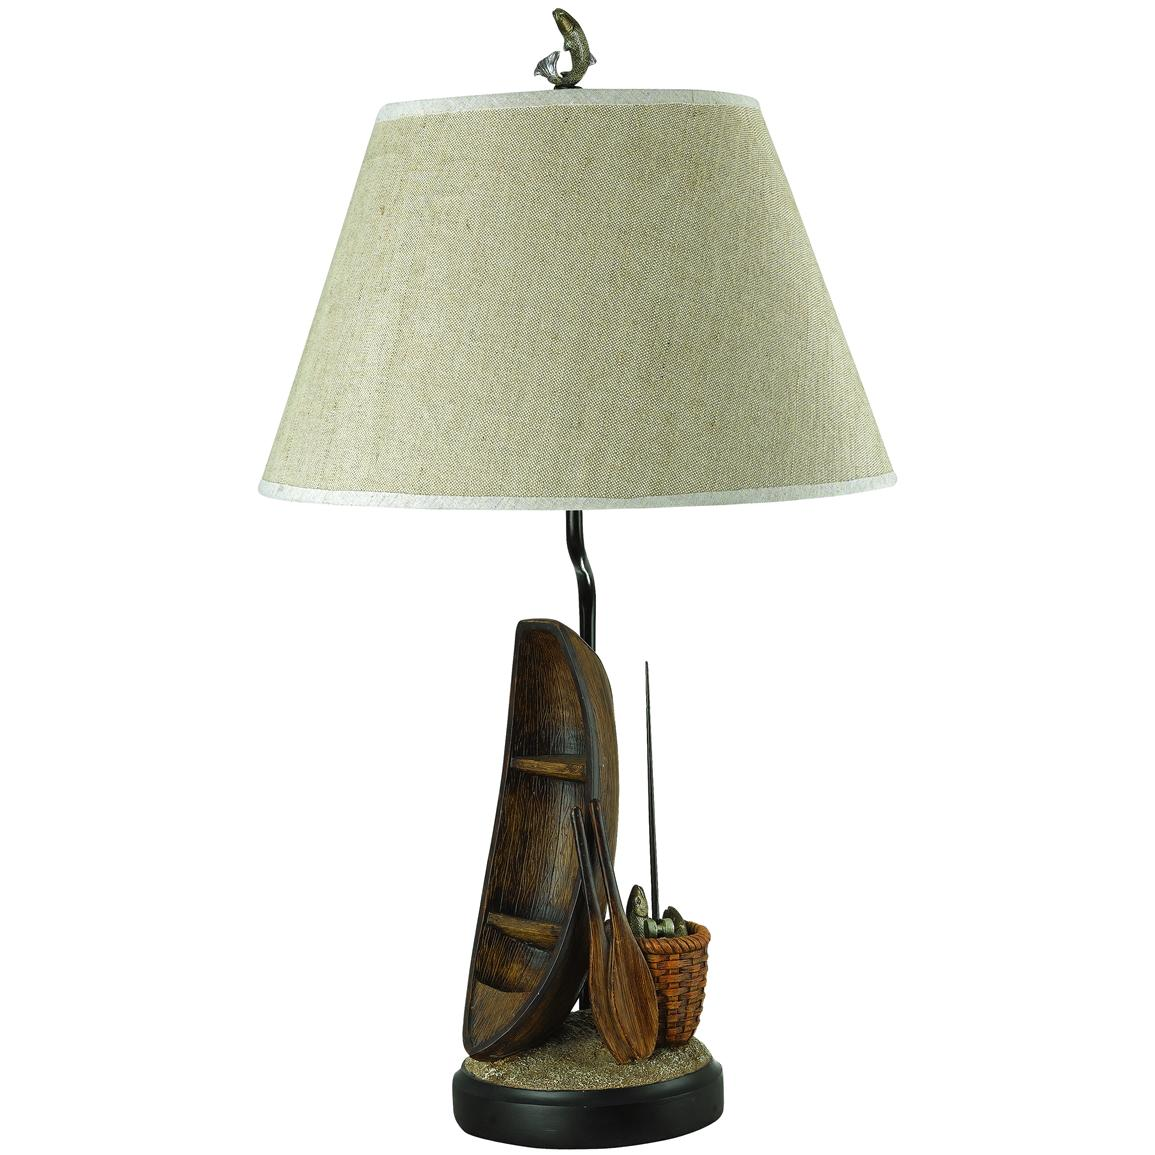 Cal lighting rowing boat table lamp 139995 lighting at for 12v table lamps for boats